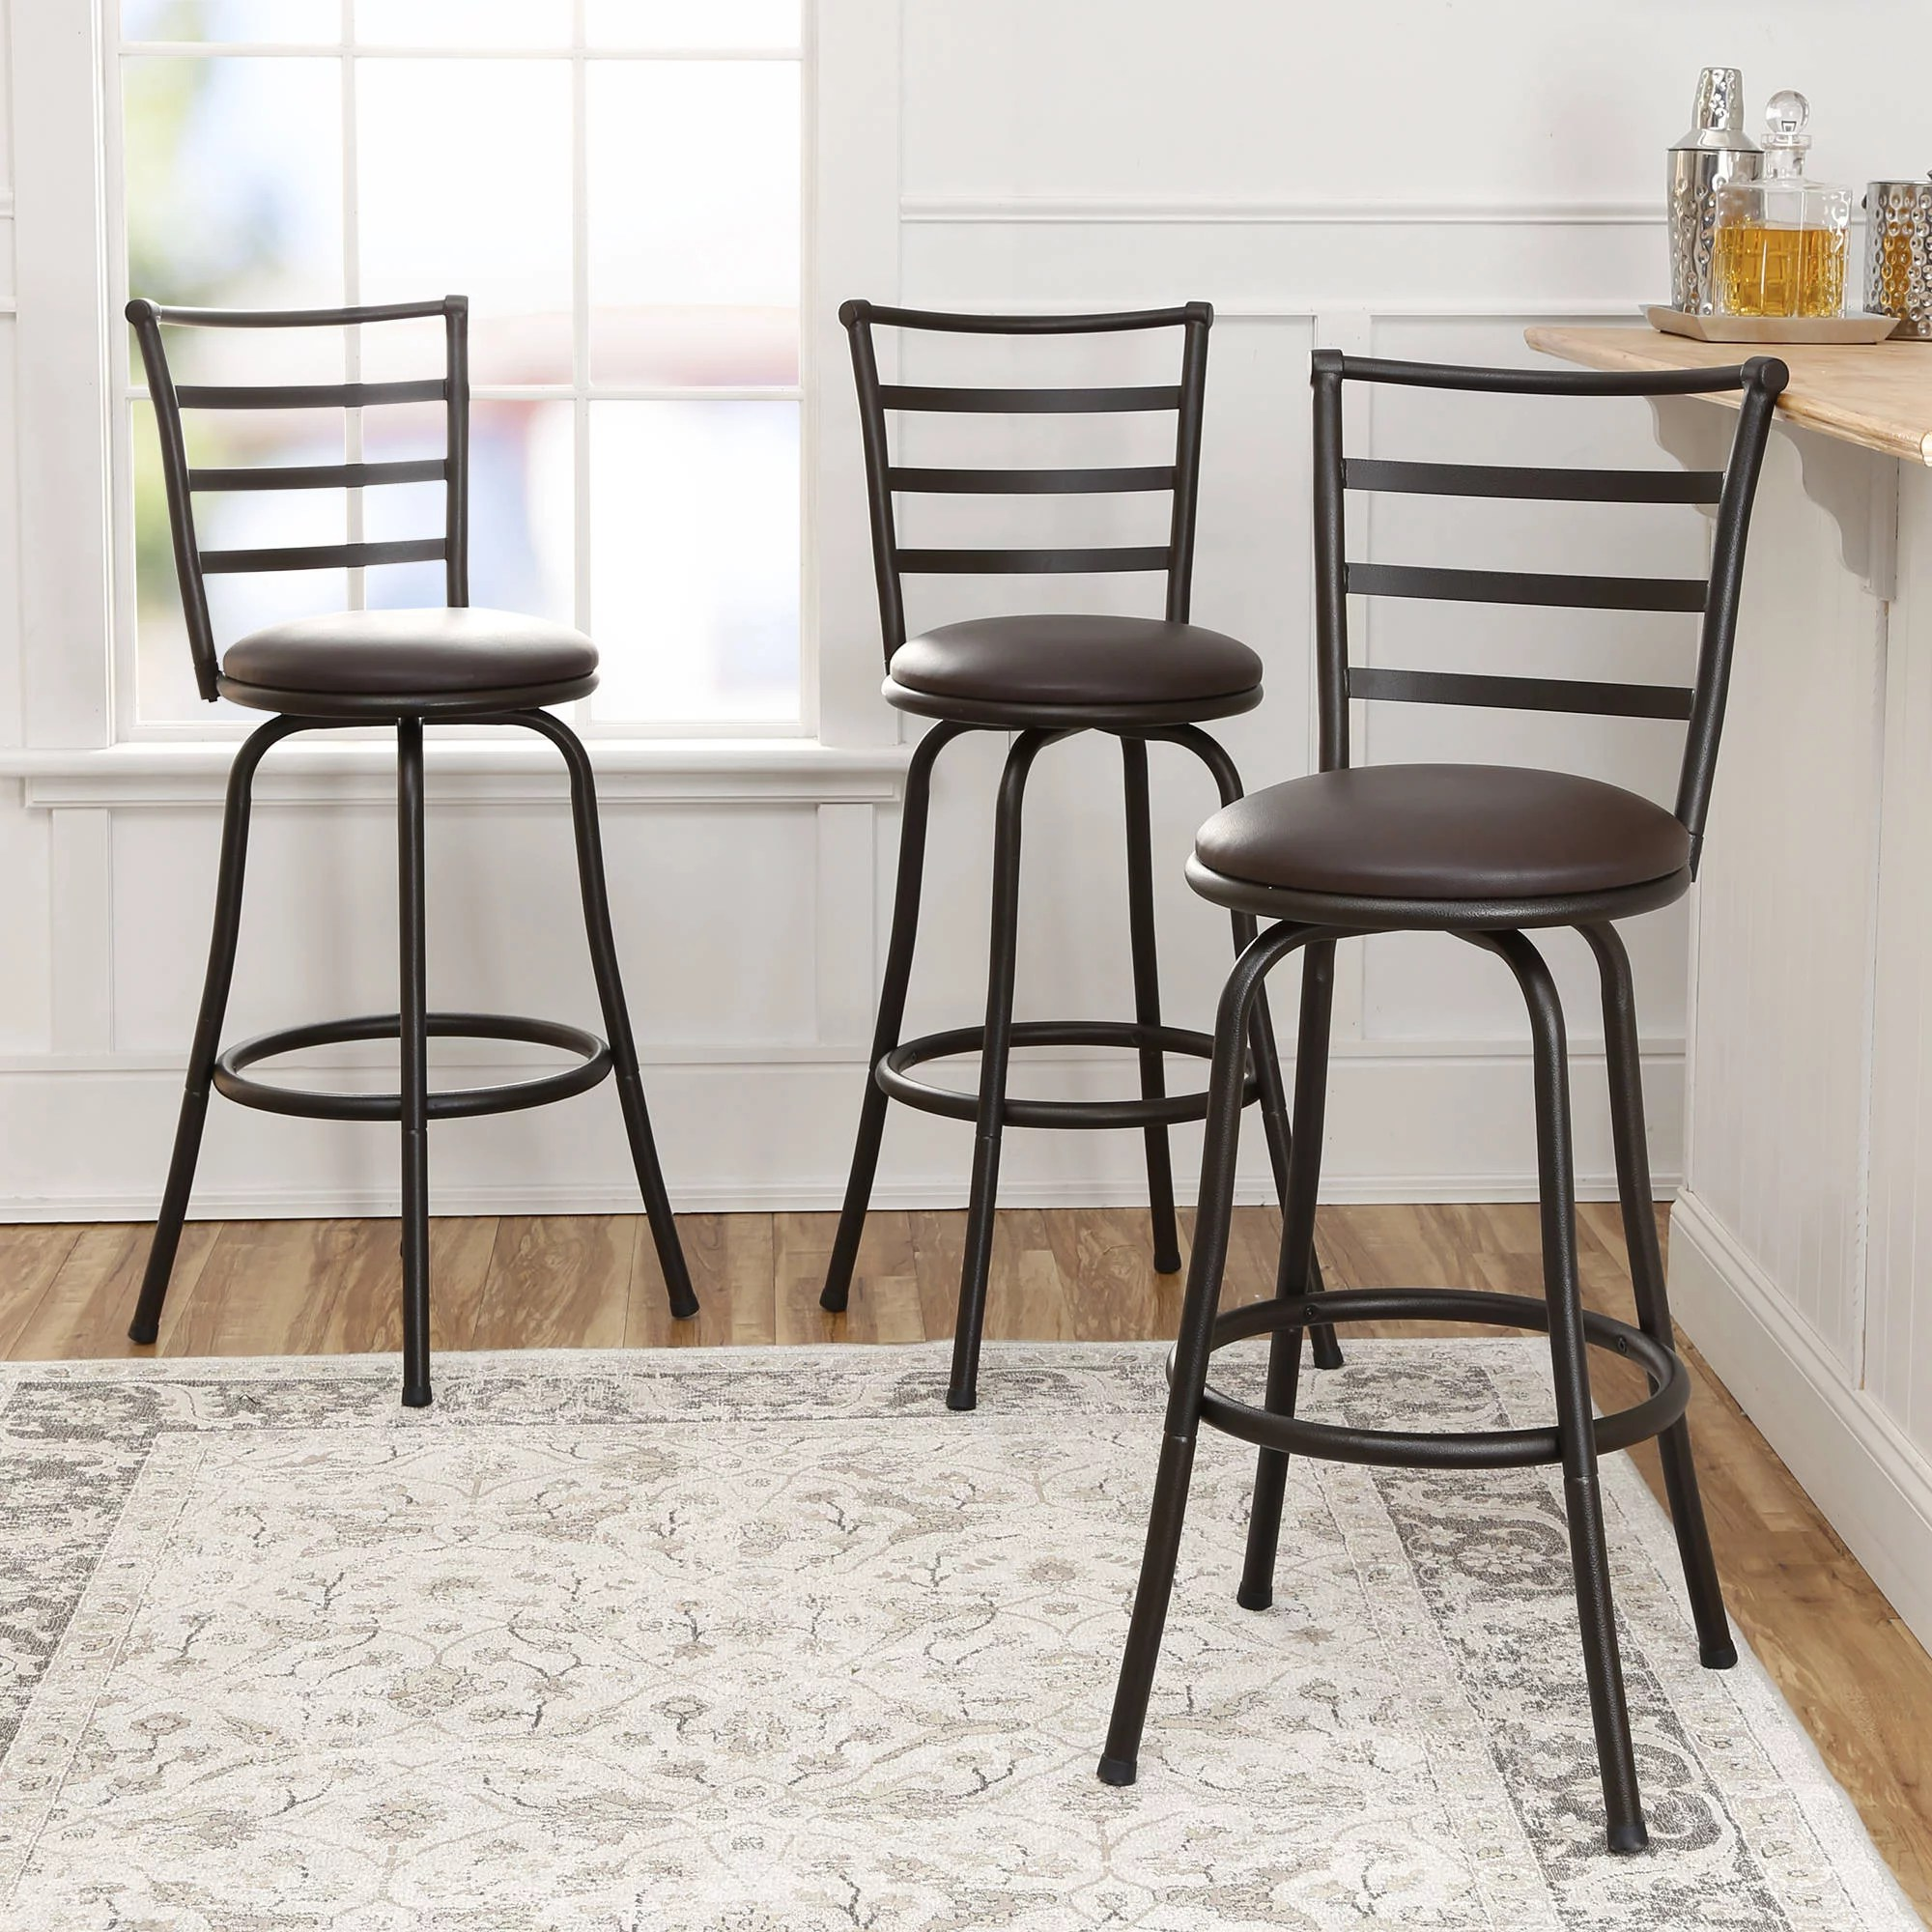 Metal Counter Height Chairs New Mainstays Adjustable Height Swivel Bar Stool Set Of 3